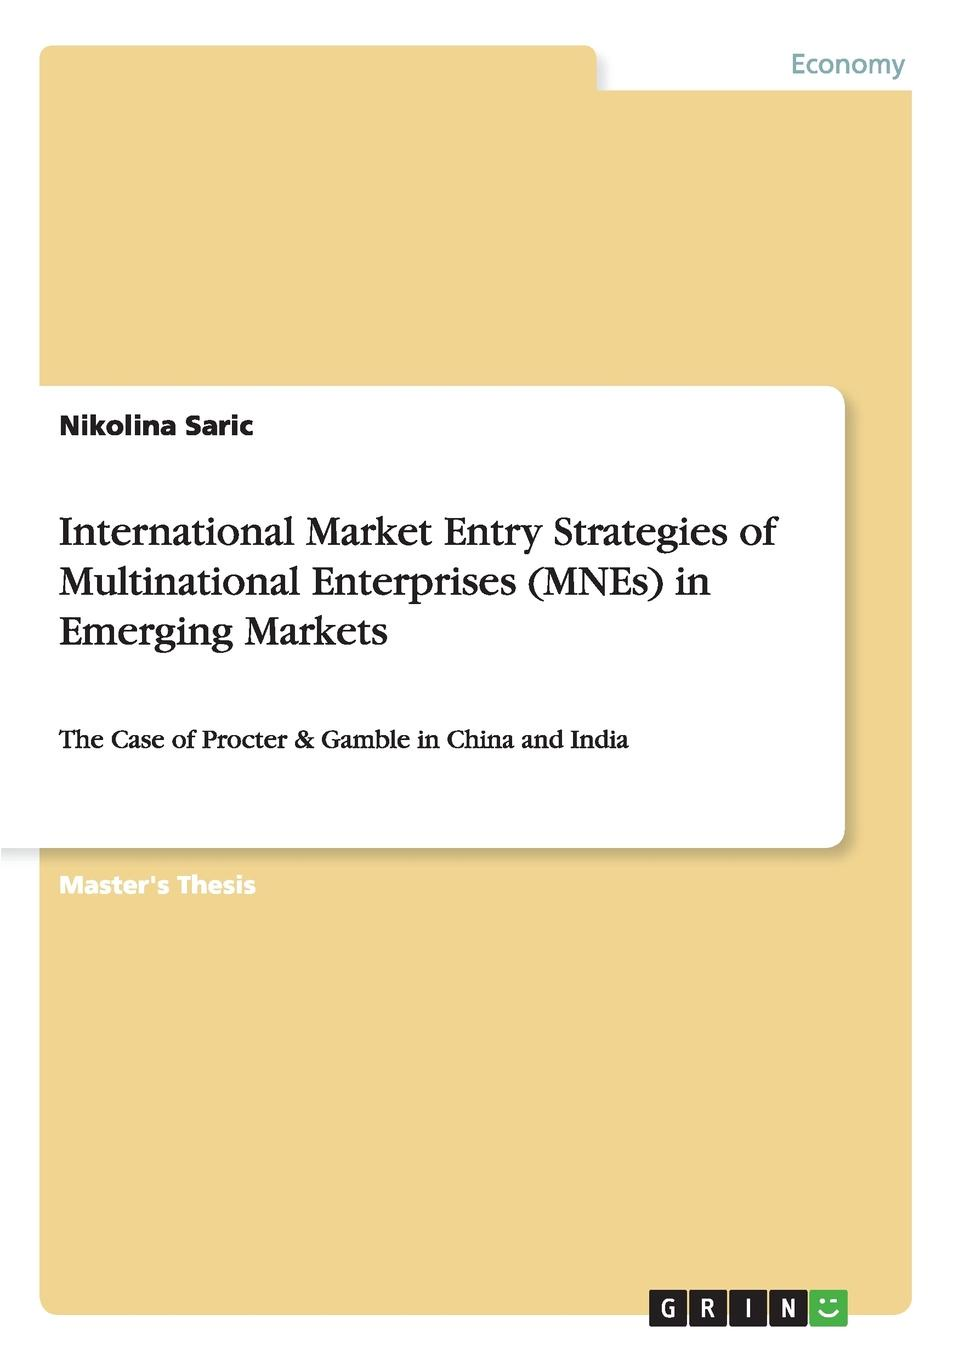 Nikolina Saric International Market Entry Strategies of Multinational Enterprises (MNEs) in Emerging Markets halil kiymaz market microstructure in emerging and developed markets price discovery information flows and transaction costs